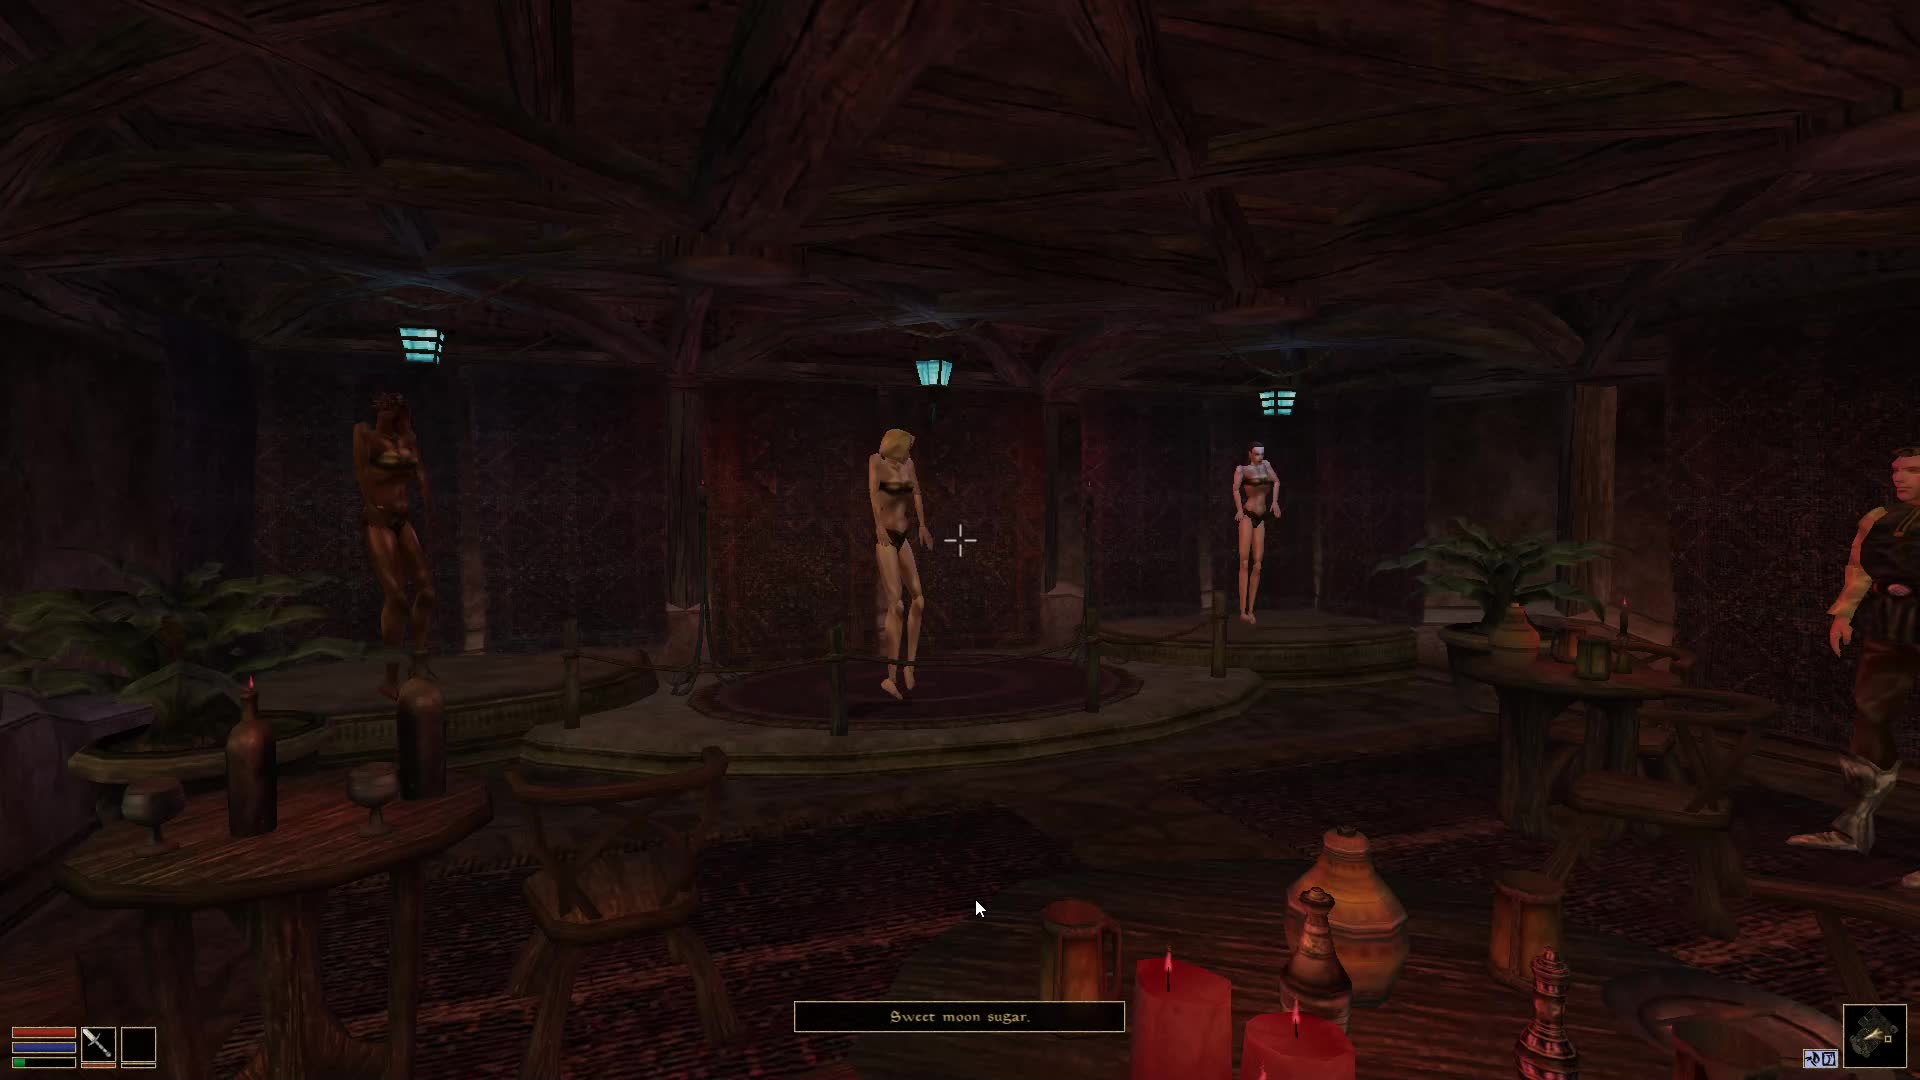 Morrowind Gifs Search | Search & Share on Homdor